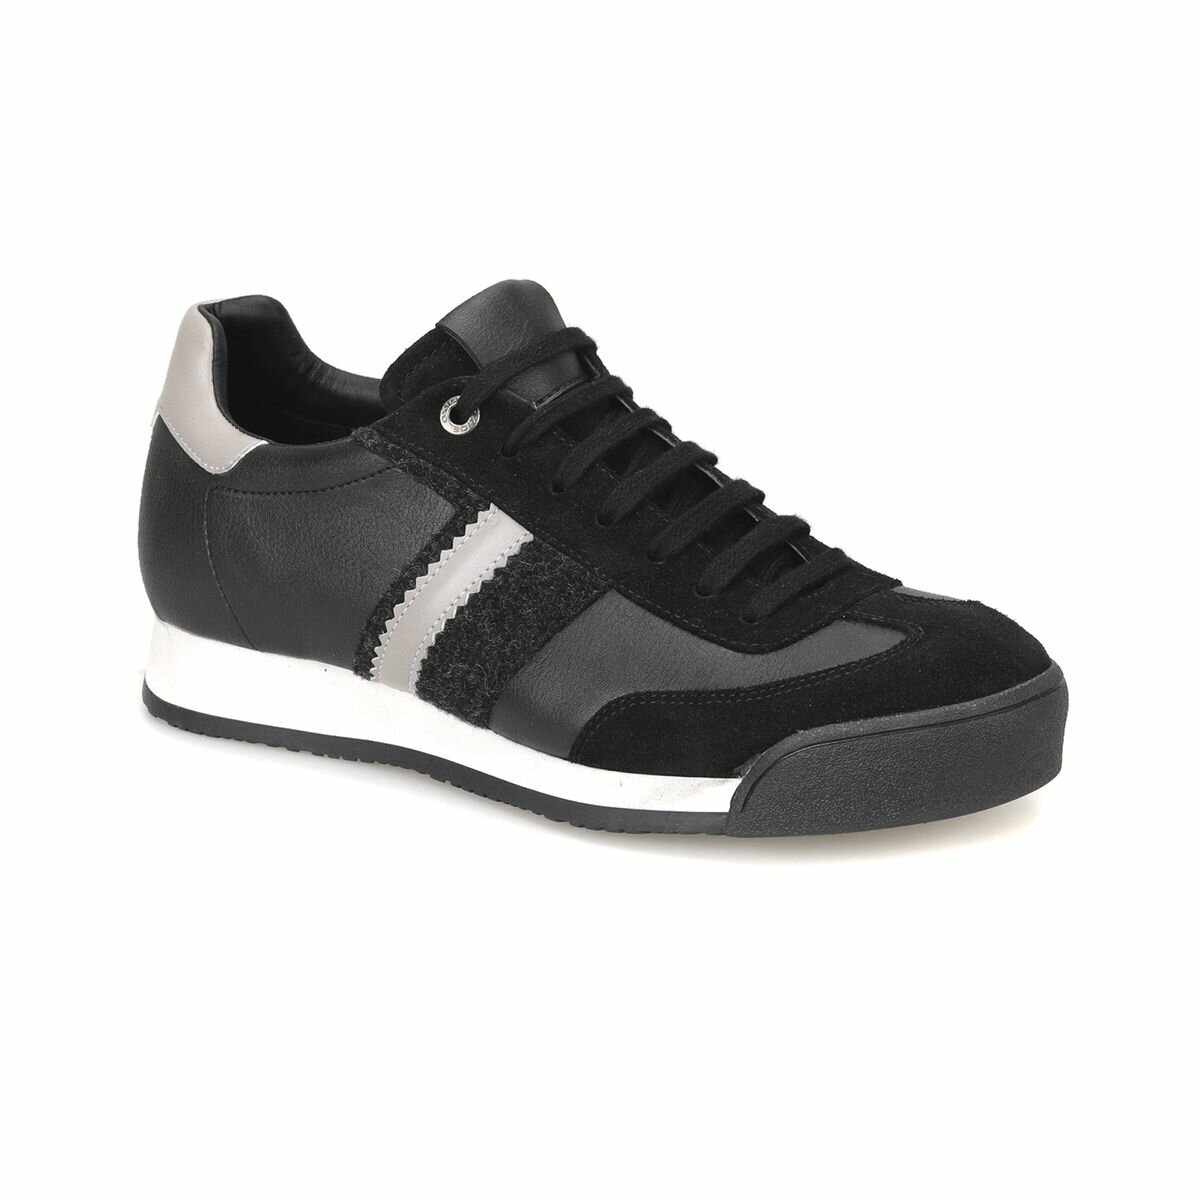 FLO 18484 M Black Male Shoes Forester